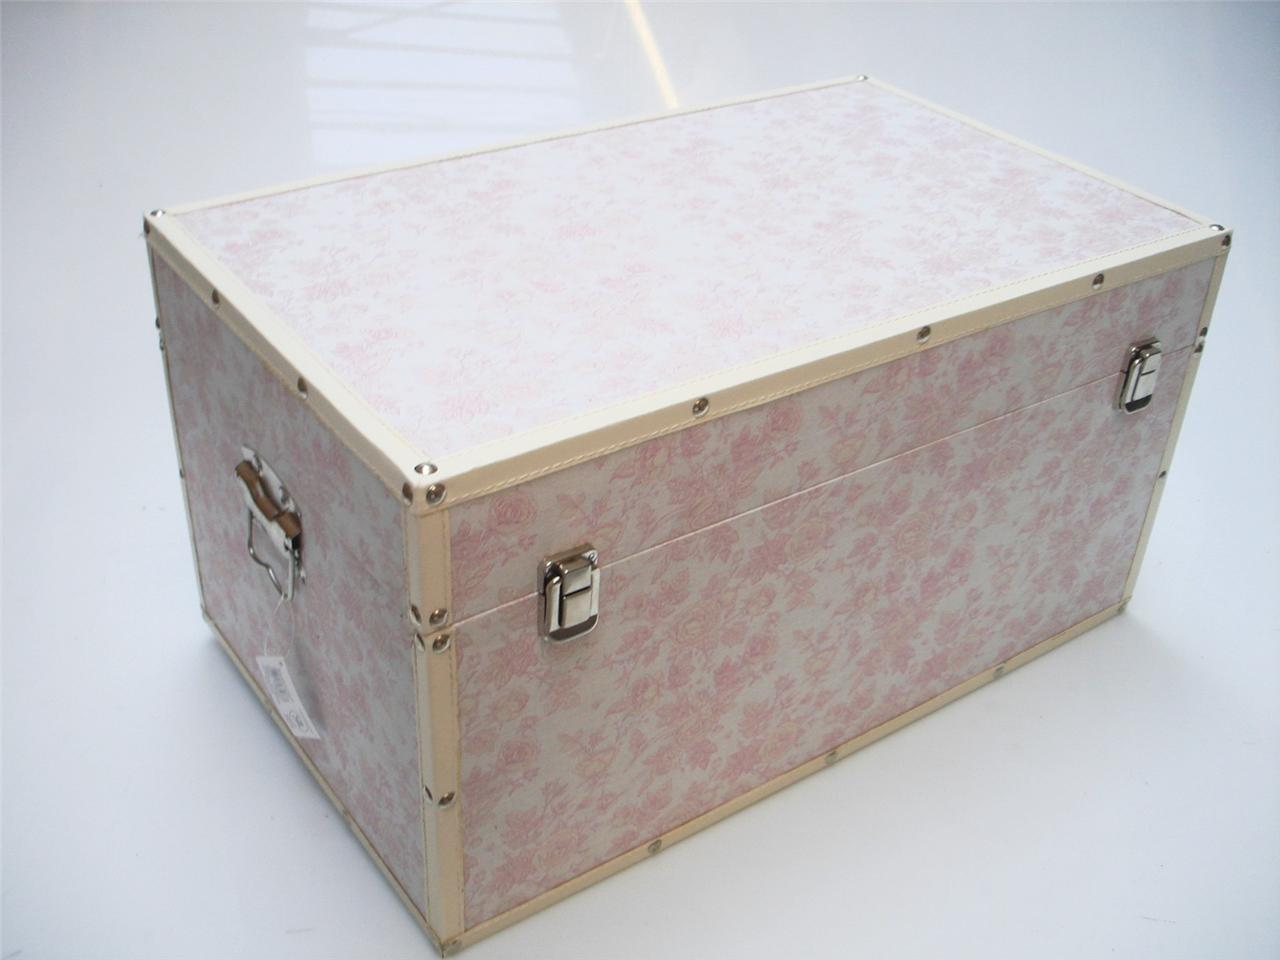 Bedroom Storage Boxes Rose Flower Design Baby Nursery Kids Bedroom Wooden